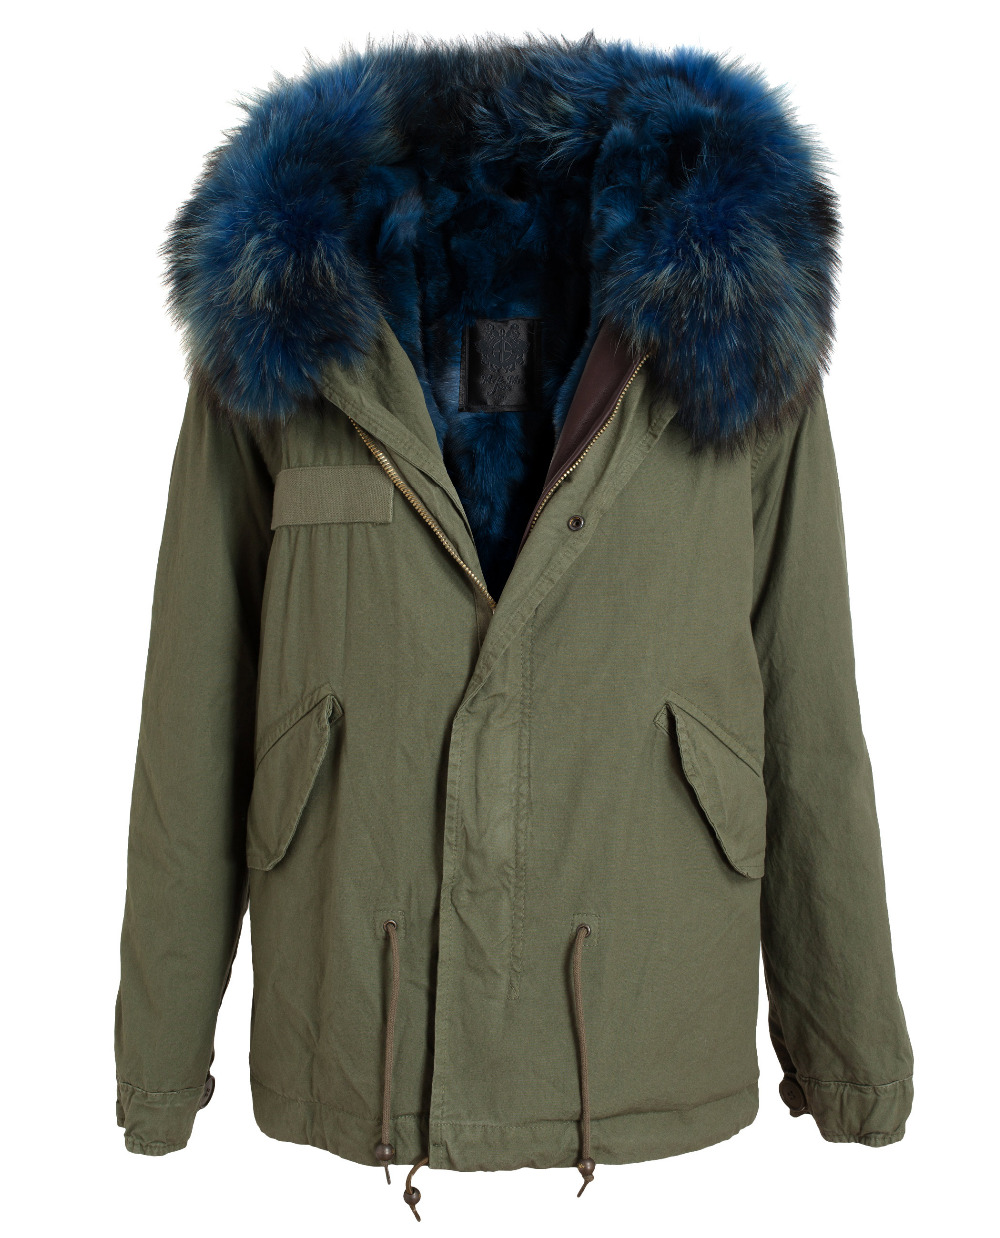 Mr & Mrs Furs Fur Lined Parka Jacket in Green Mr & Mrs ladies down ...